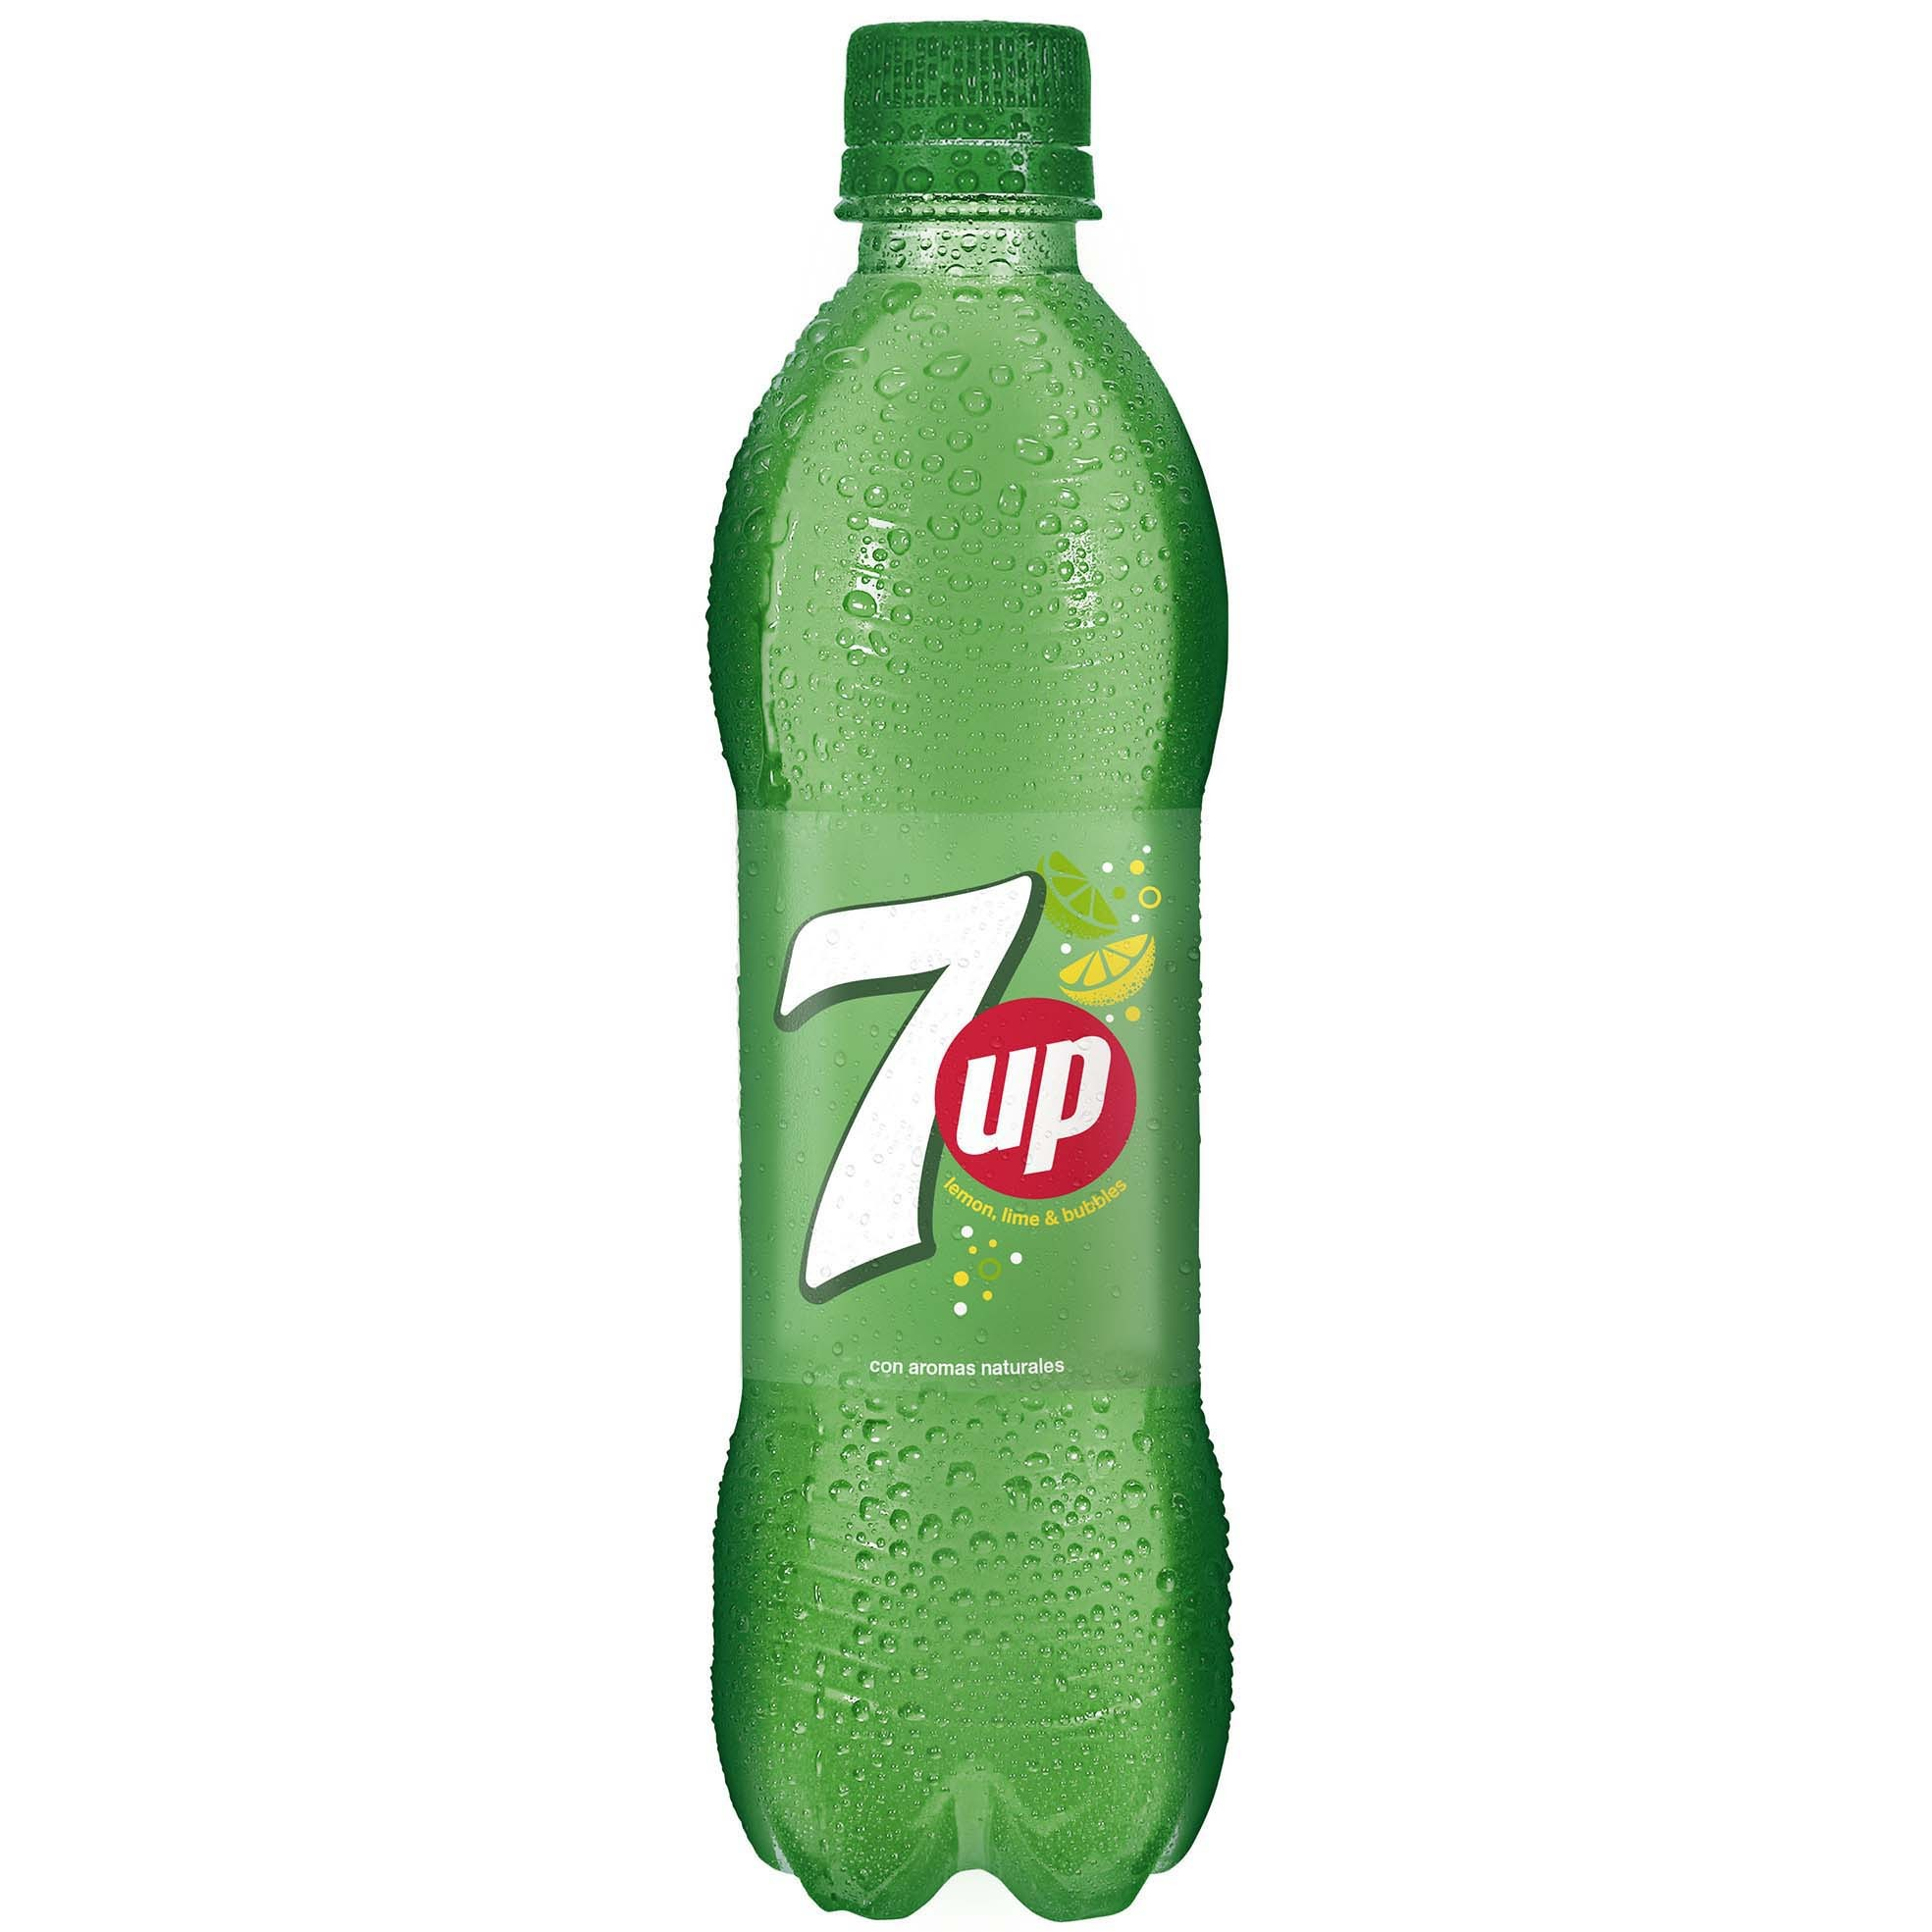 7up lima refresco lima limon de 50cl. en botella